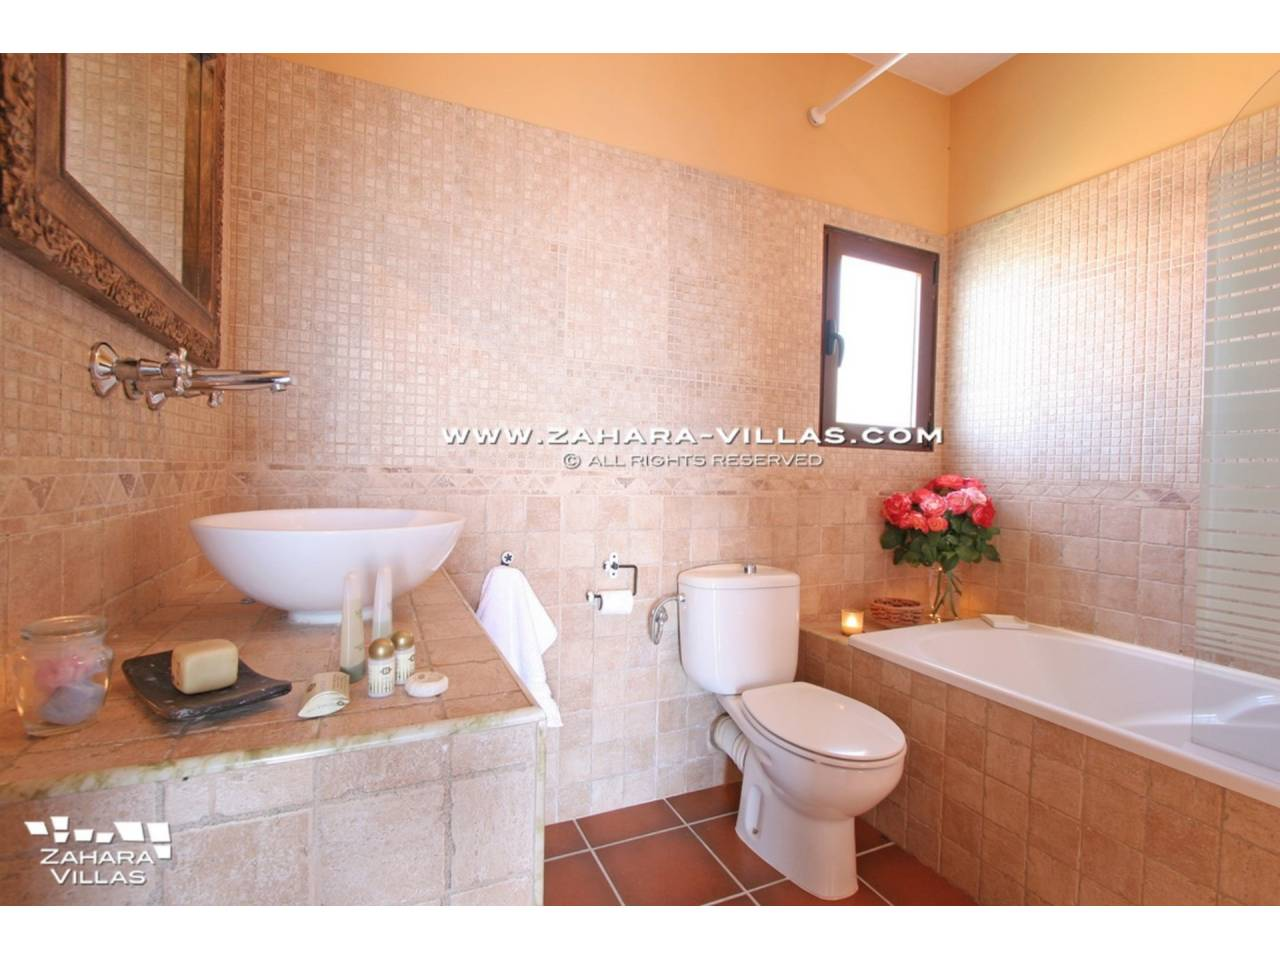 Imagen 17 de Wonderful Villa for sale in Atlanterra-Zahara de los Atunes